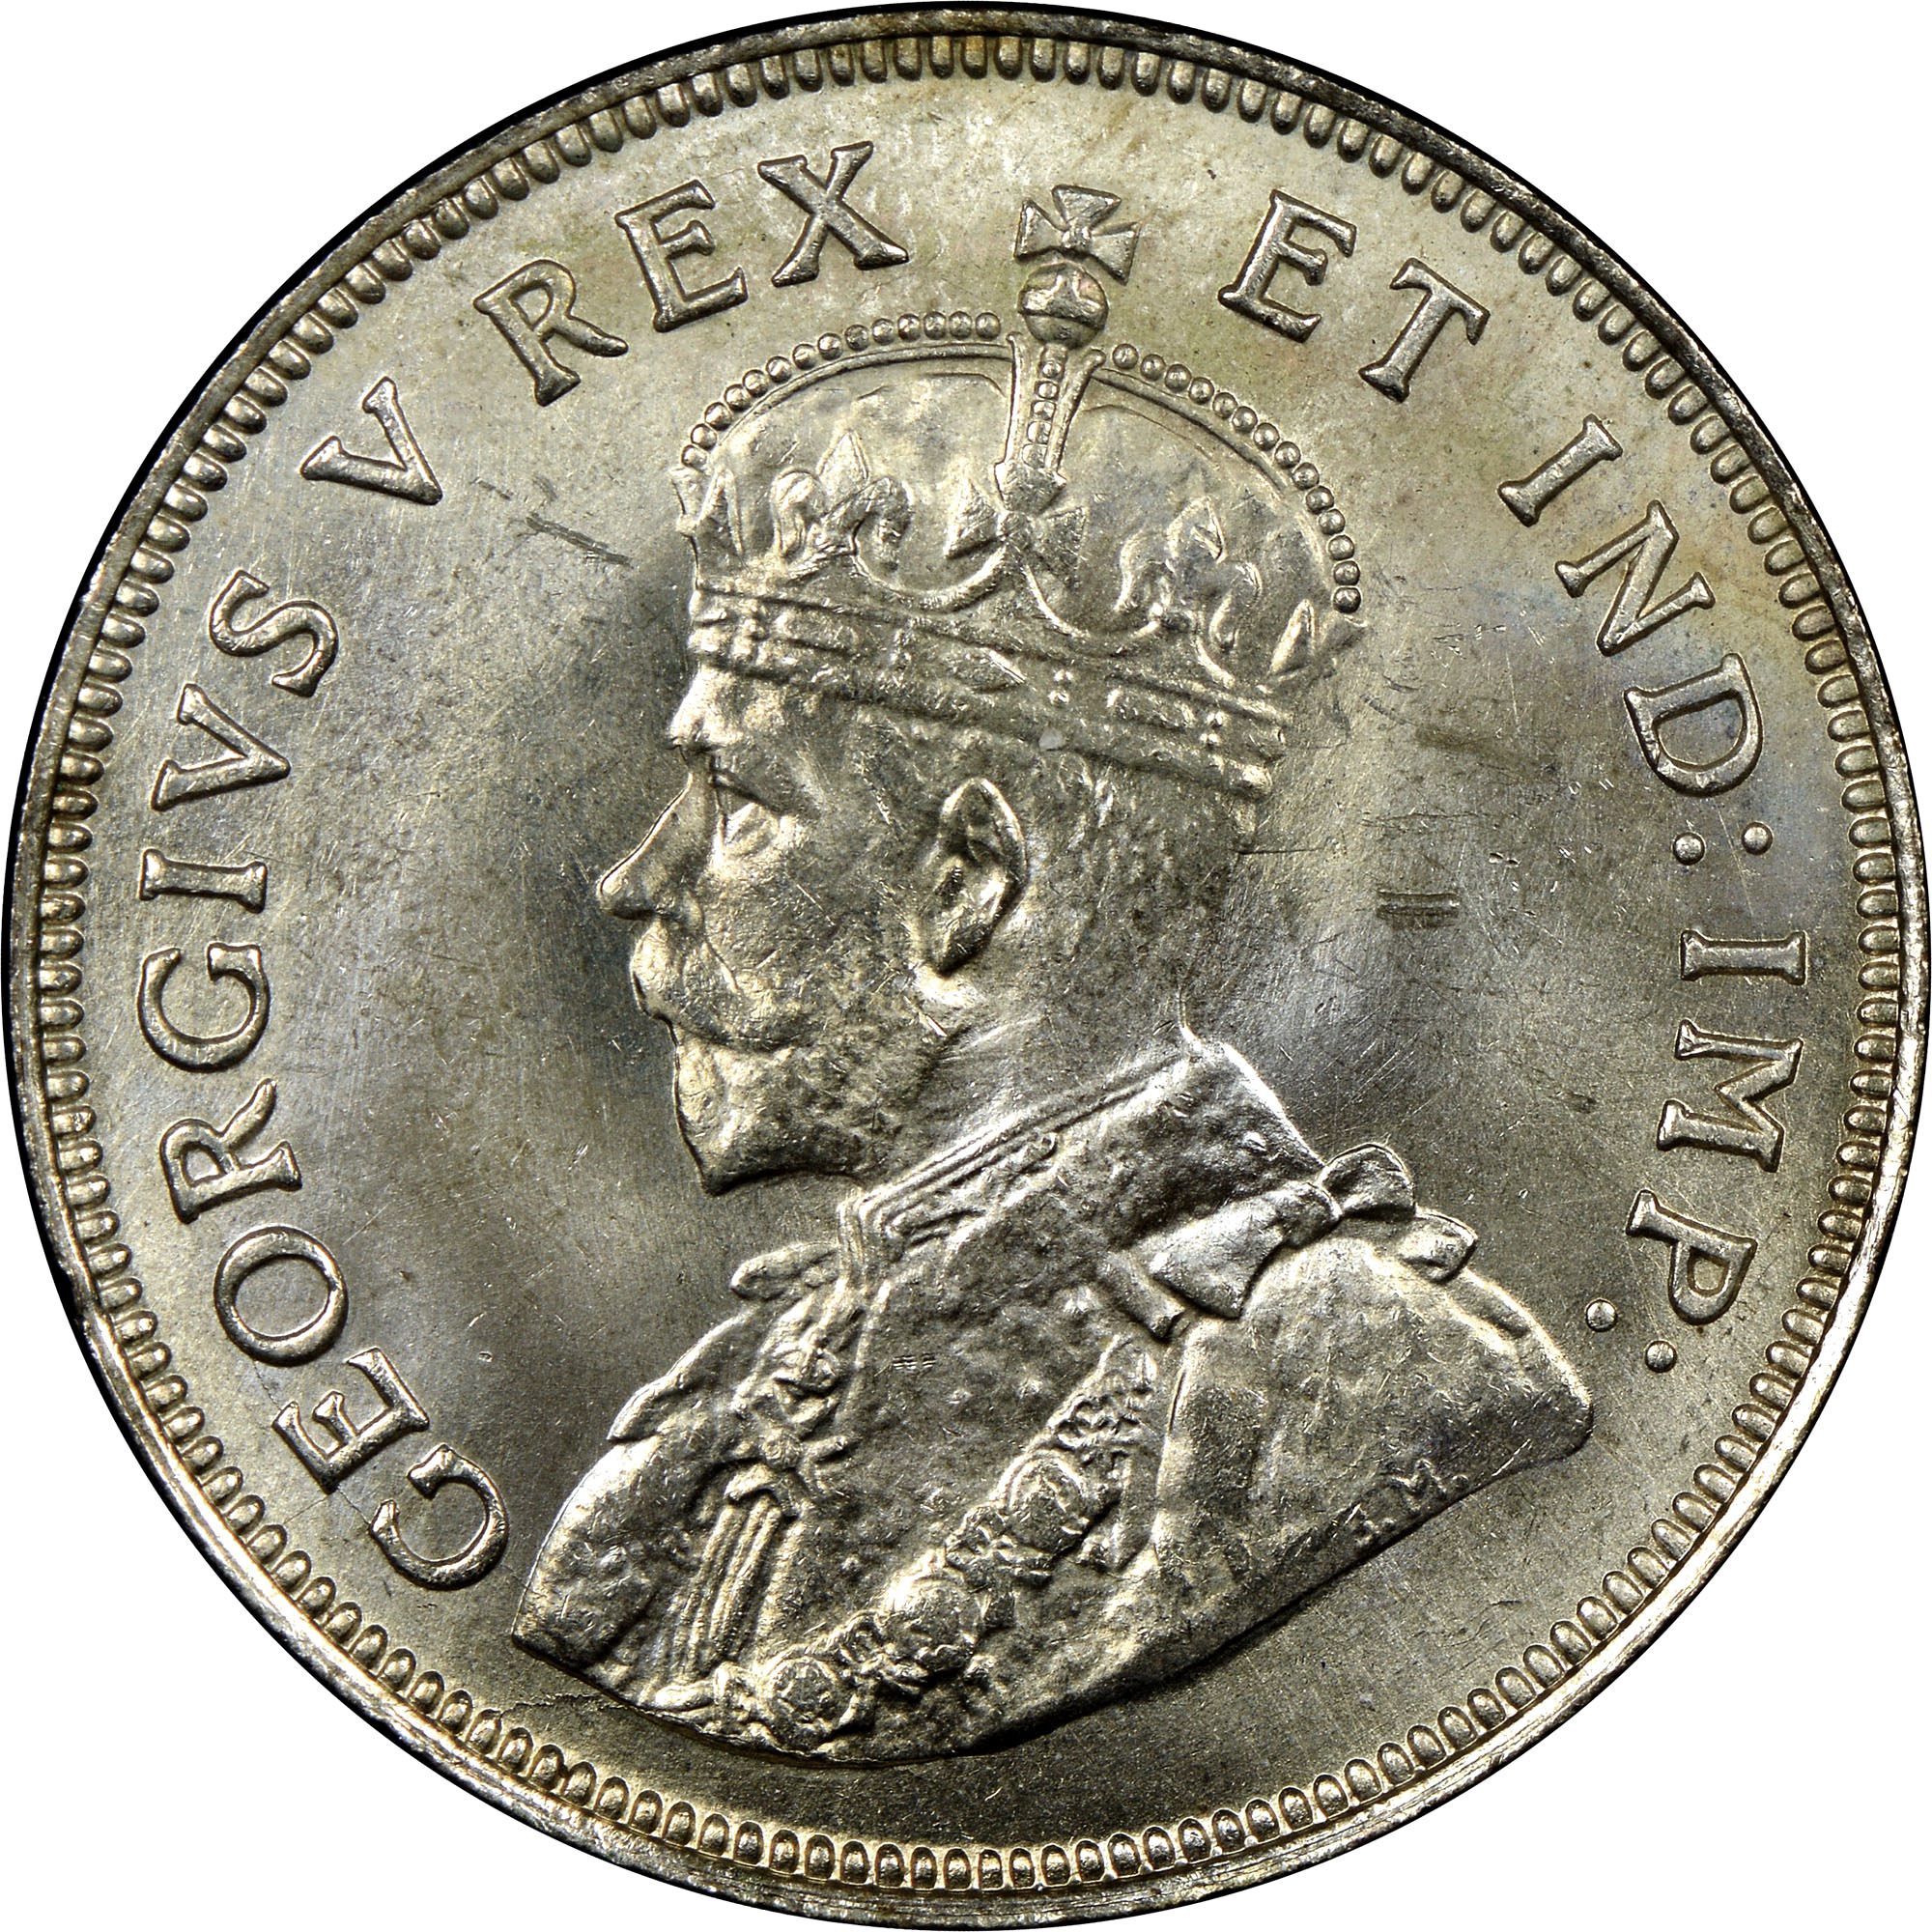 East Africa Shilling KM 21 Prices & Values | NGC